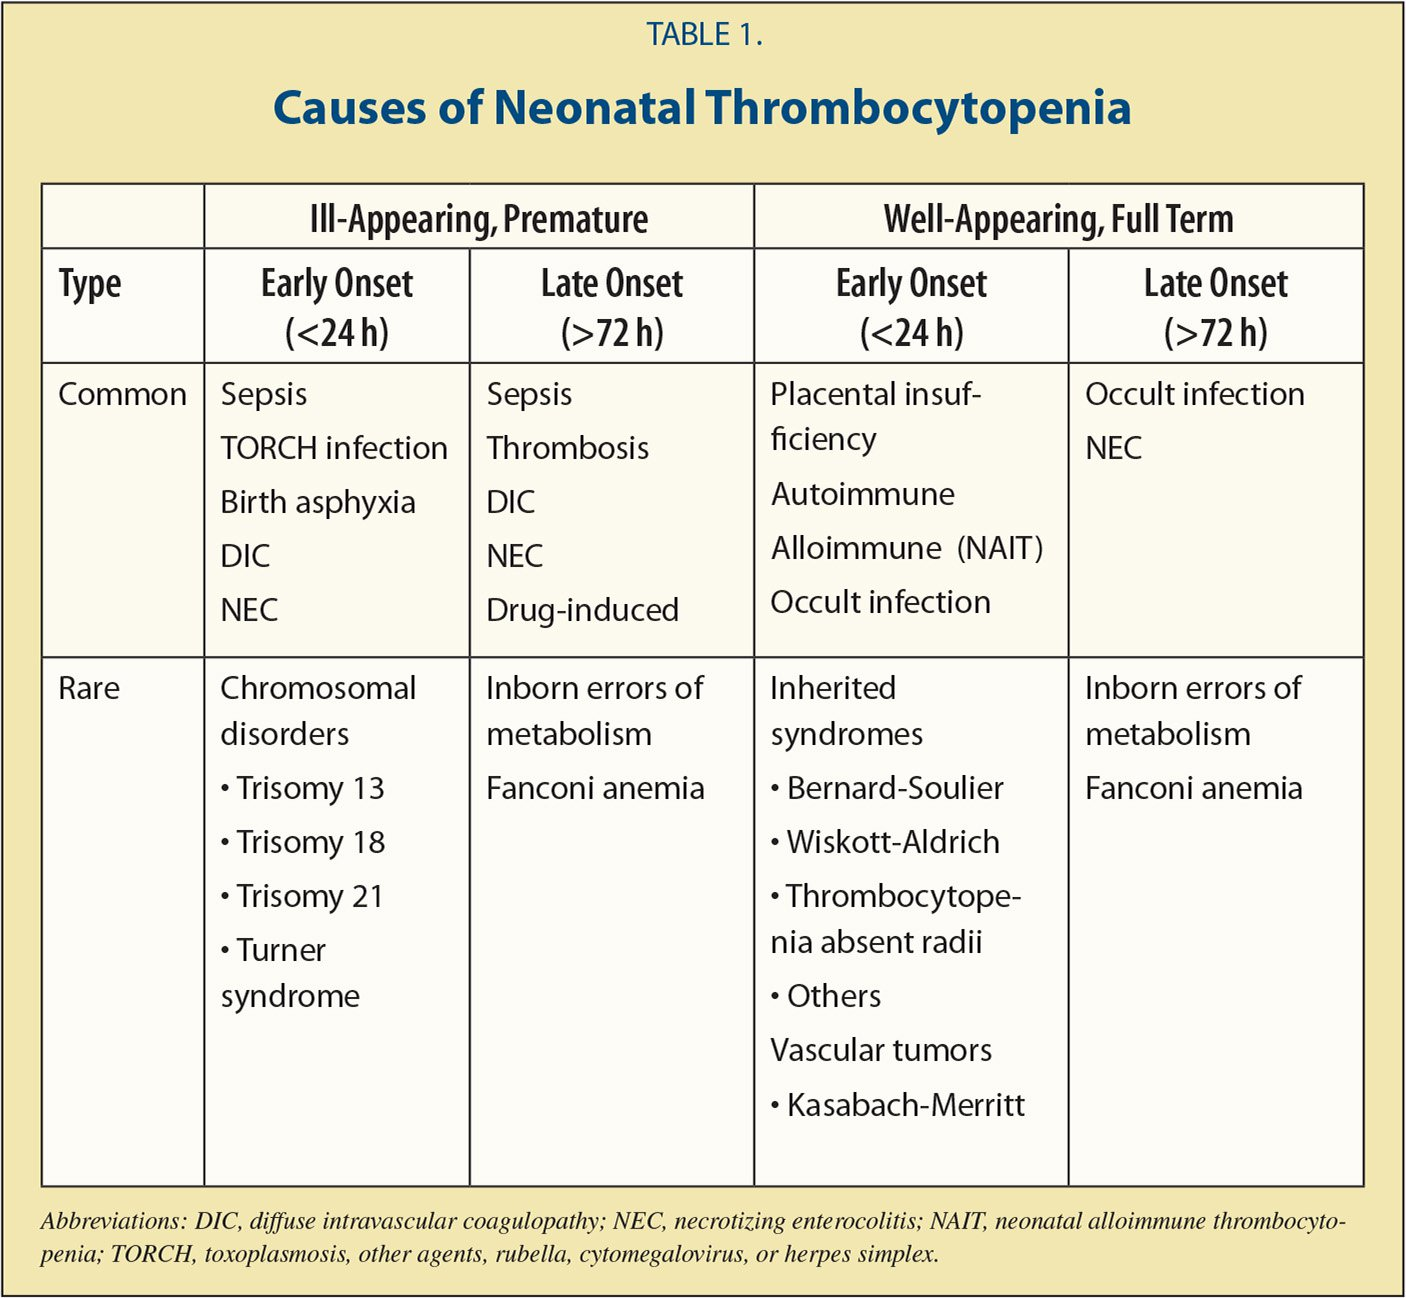 Neonatal Thrombocytopenia: Etiology and Diagnosis